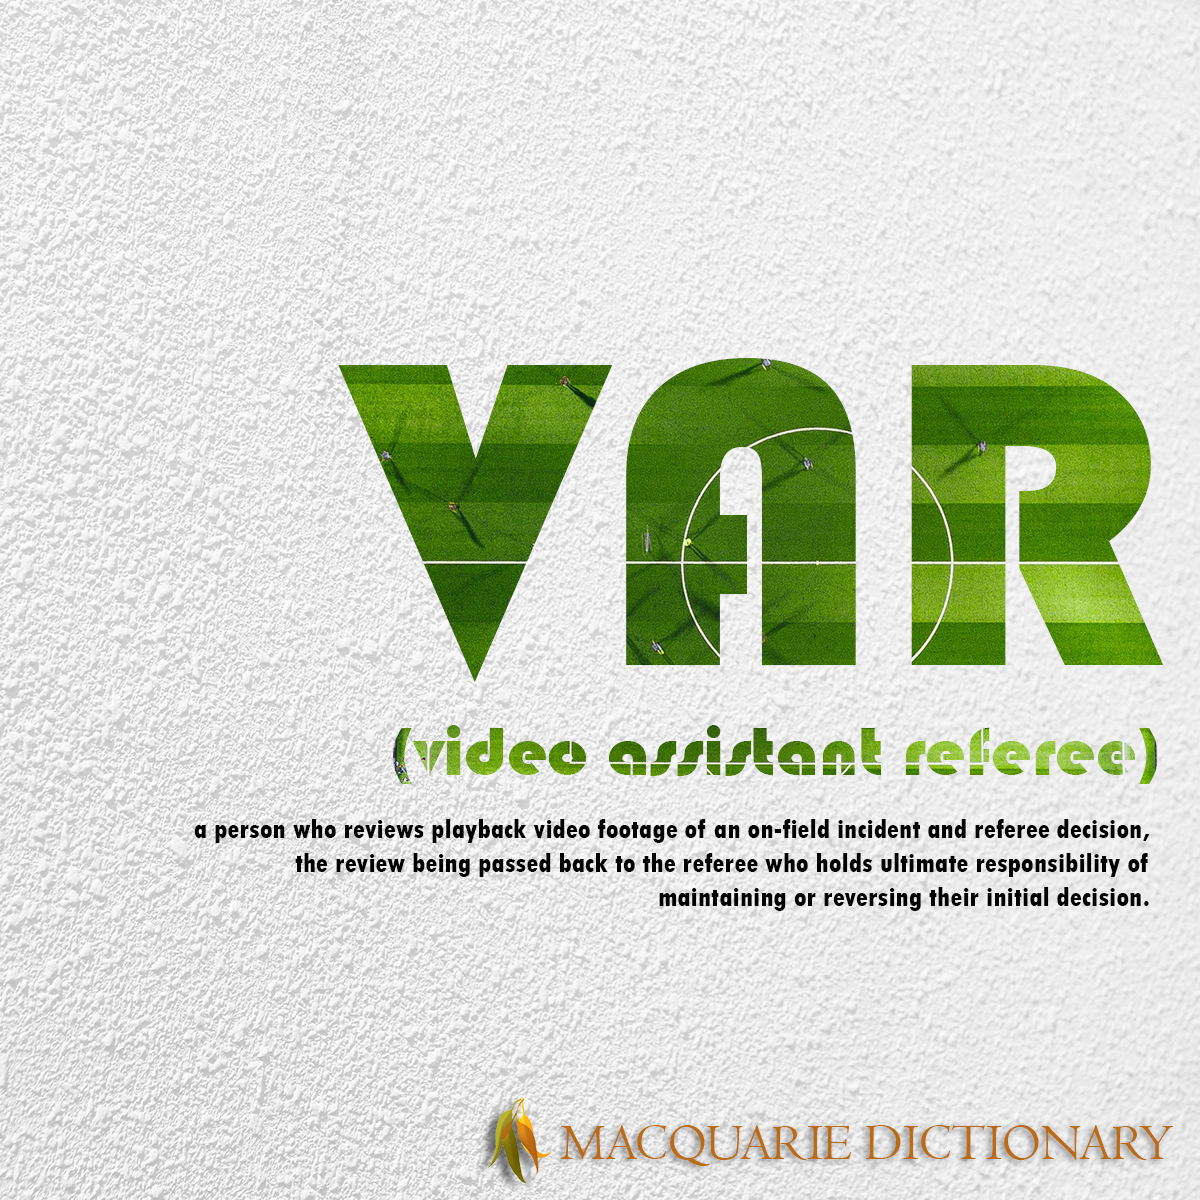 Image of Macquarie Dictionary Word of the Year - VAR - a person who reviews video footage of an on-field incident that resulted in a referee decision, the review being passed back to the referee who holds ultimate responsibility for maintaining or reversing their initial decision.